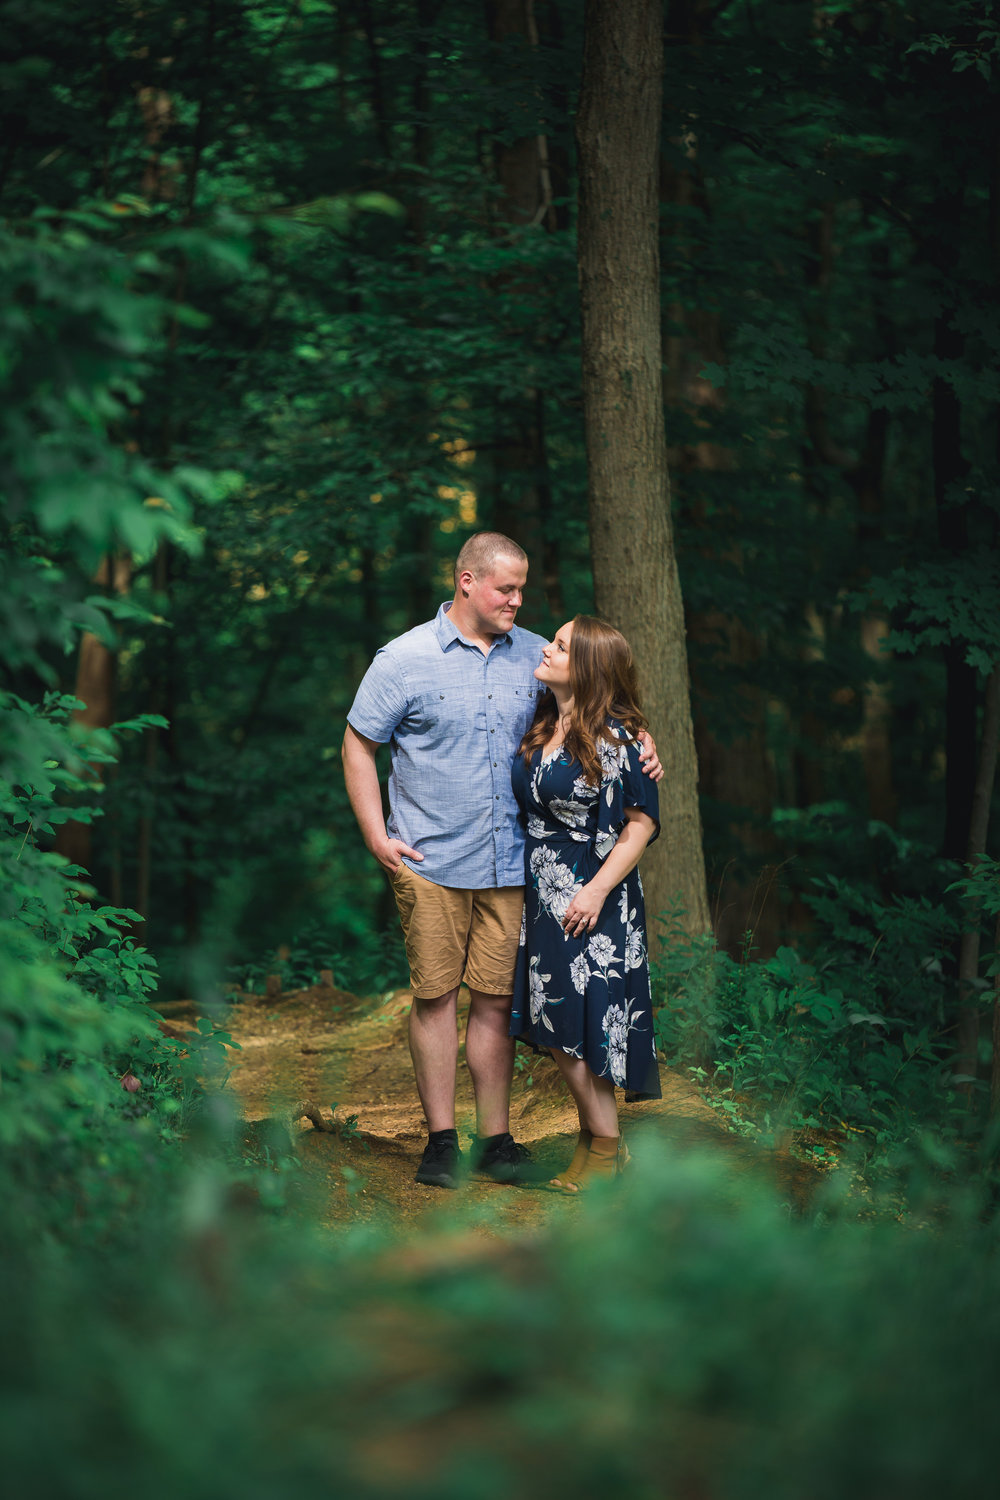 20180623_lauren_and_justin_engagement_54_5N3A4528.jpg